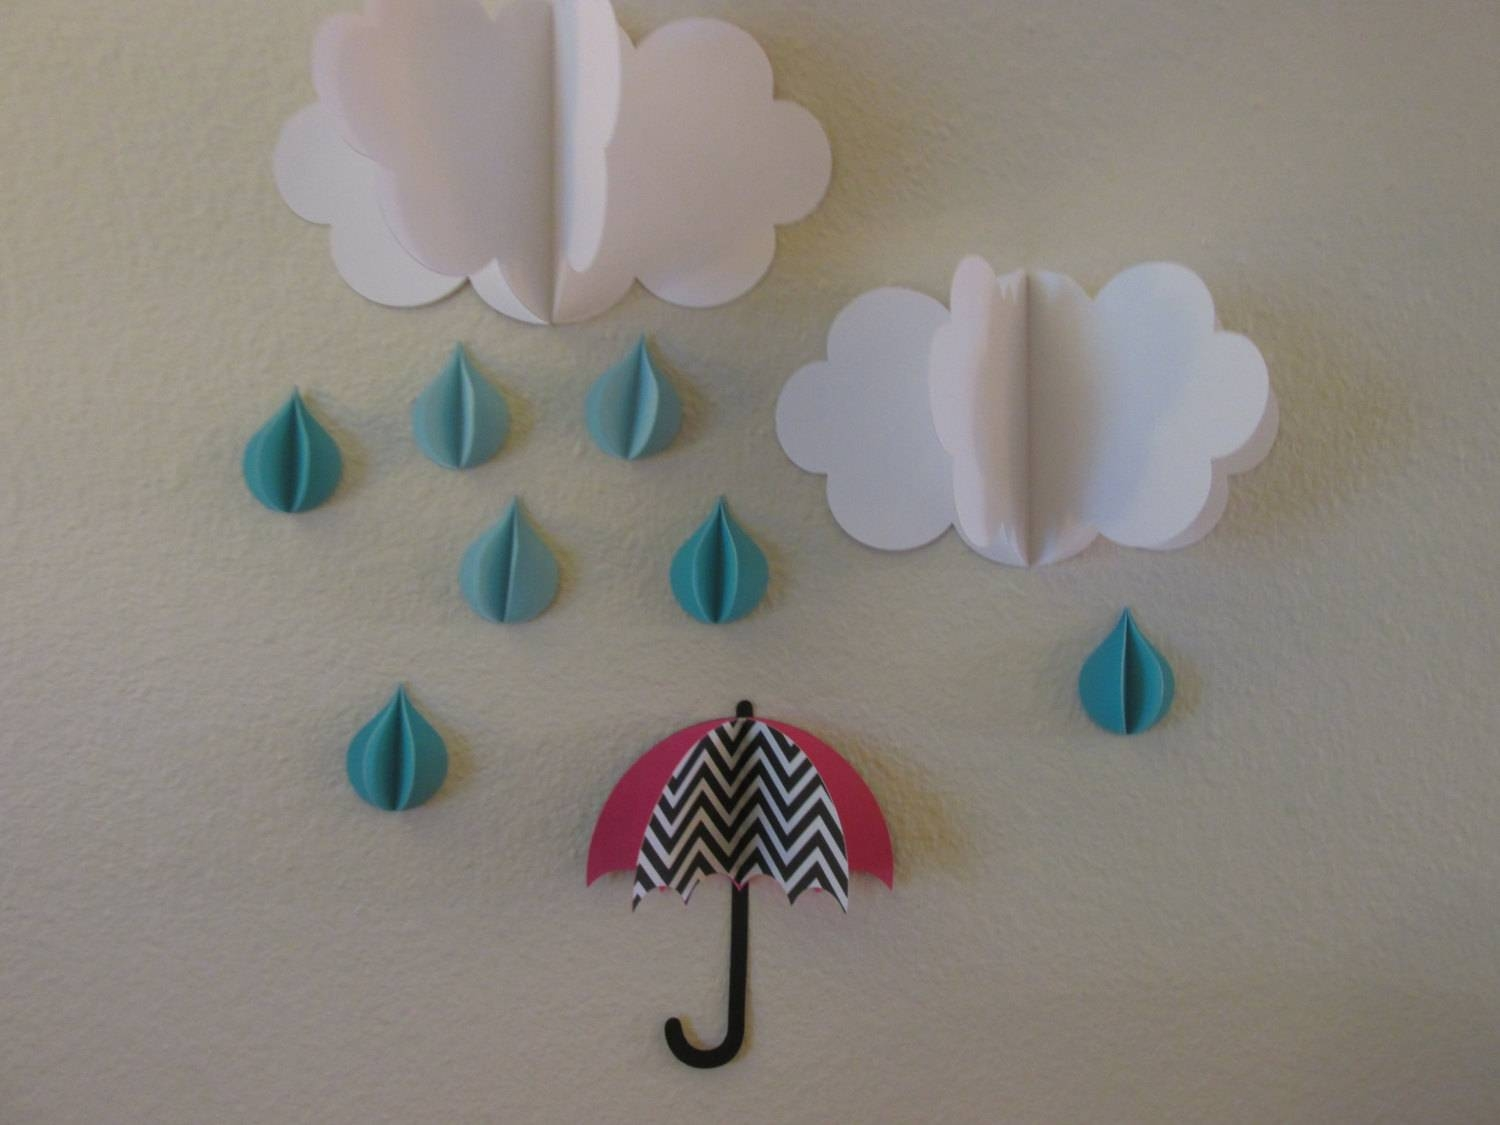 3D Wall Art 3D Baby Room Decoration Wall Art 3D Clouds Intended For Current 3D Wall Art With Paper (View 7 of 20)